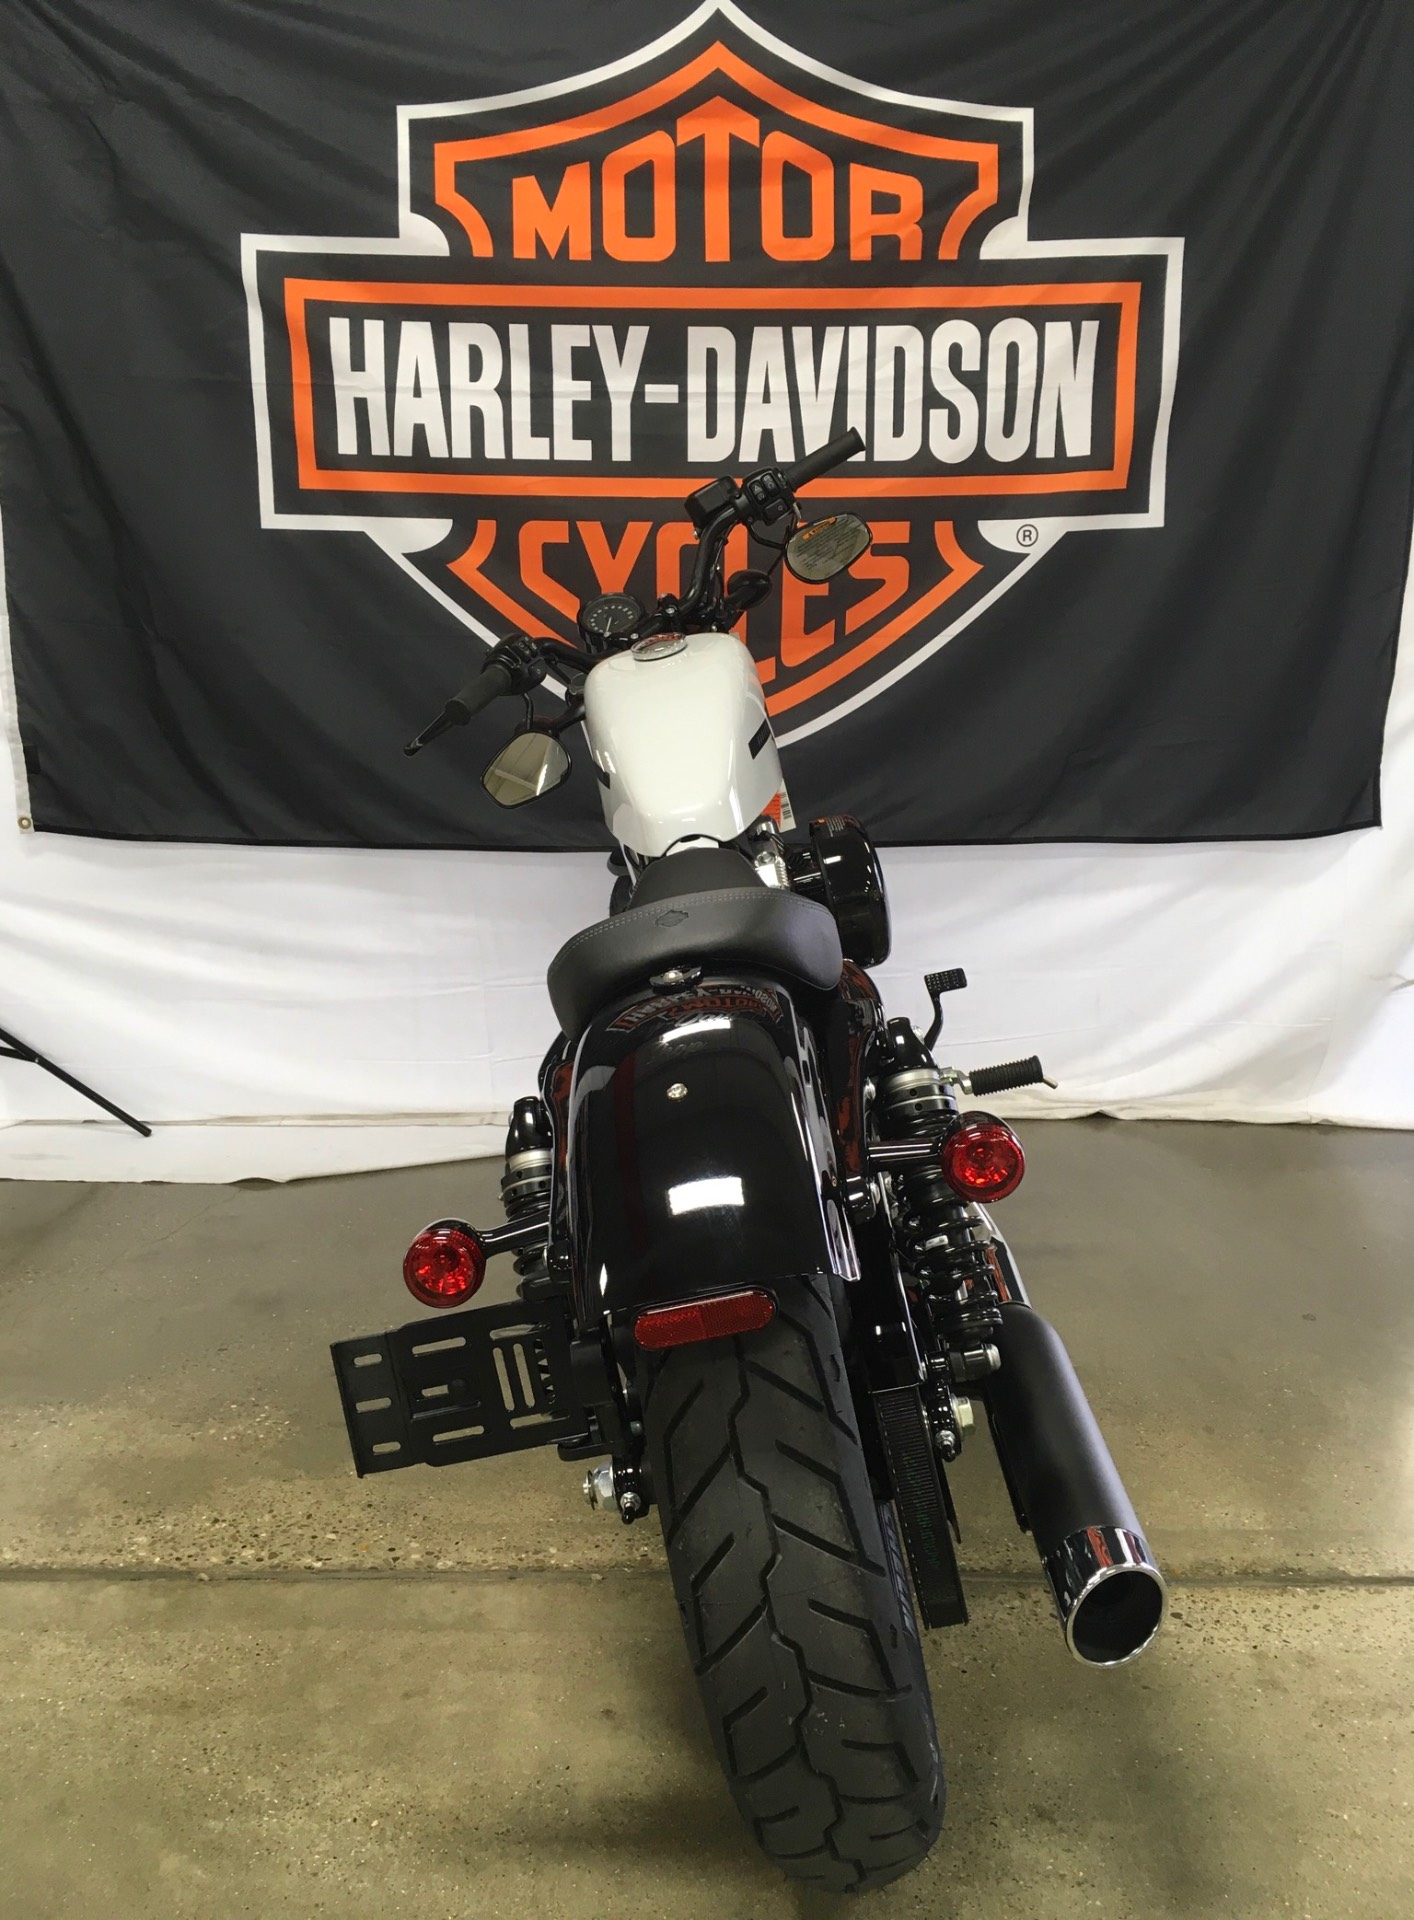 2020 Harley-Davidson XL1200X in Belmont, Ohio - Photo 3